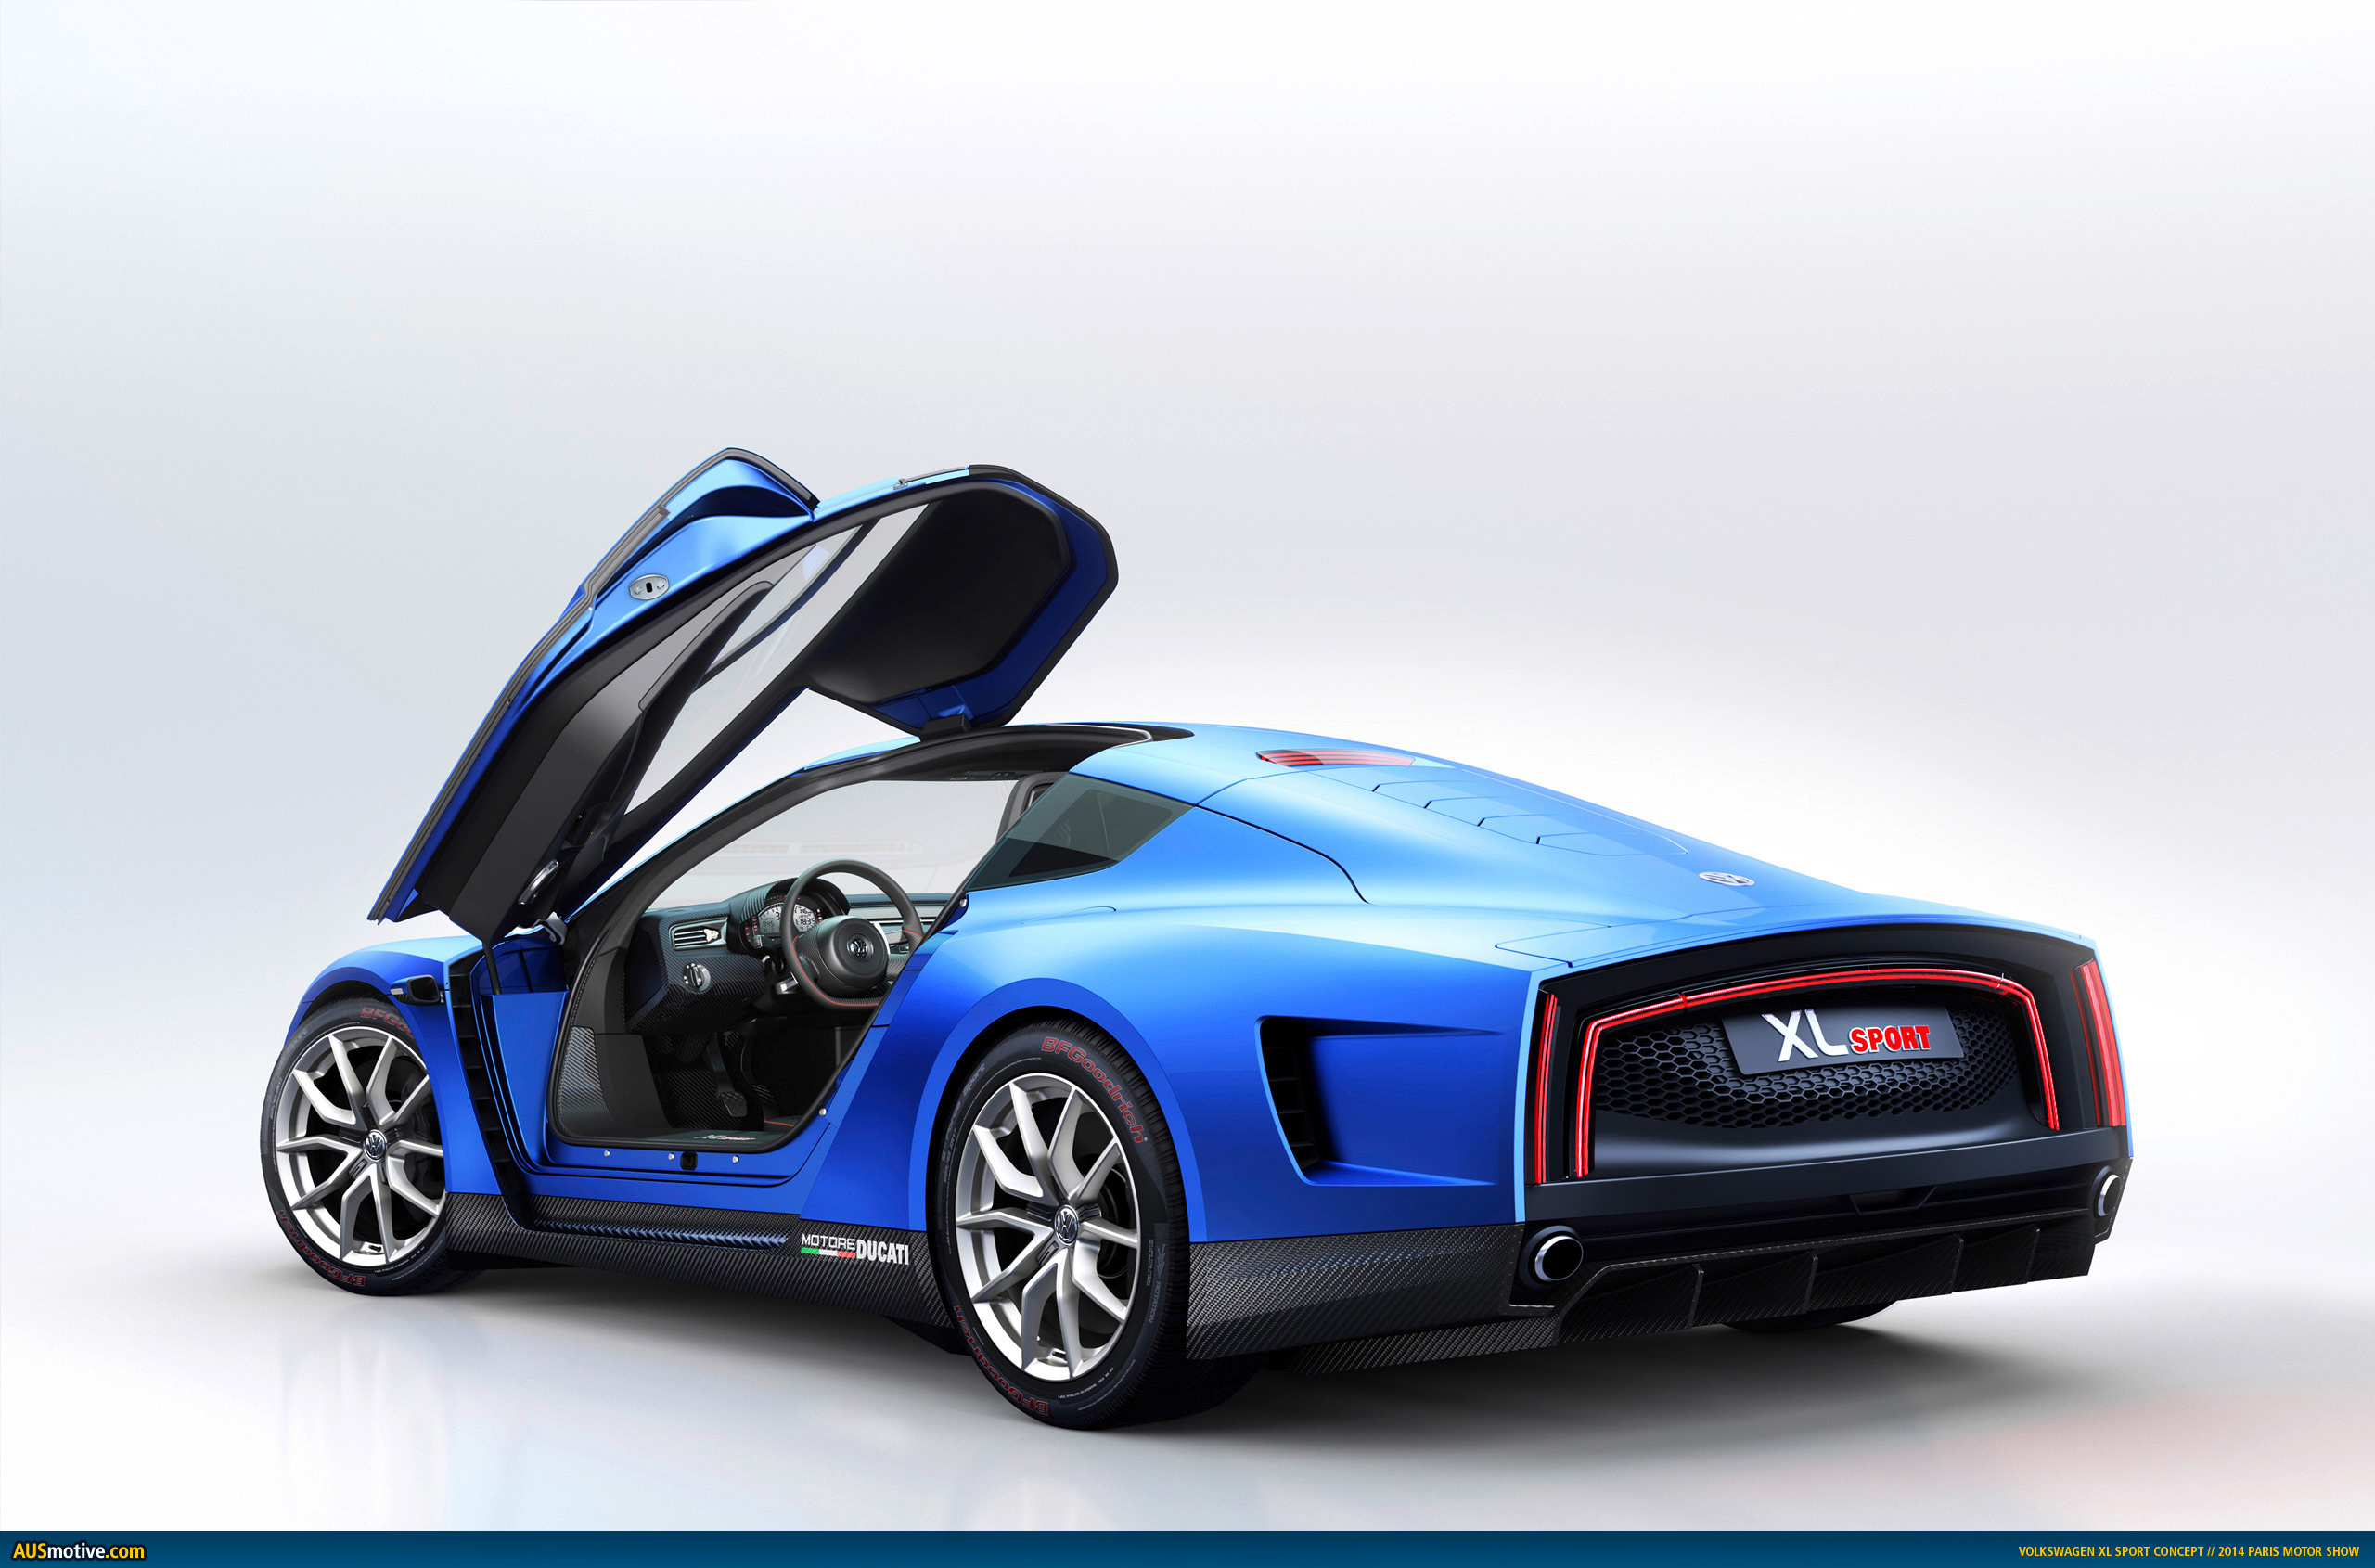 Citaten Sport Xl : Ausmotive paris volkswagen xl sport